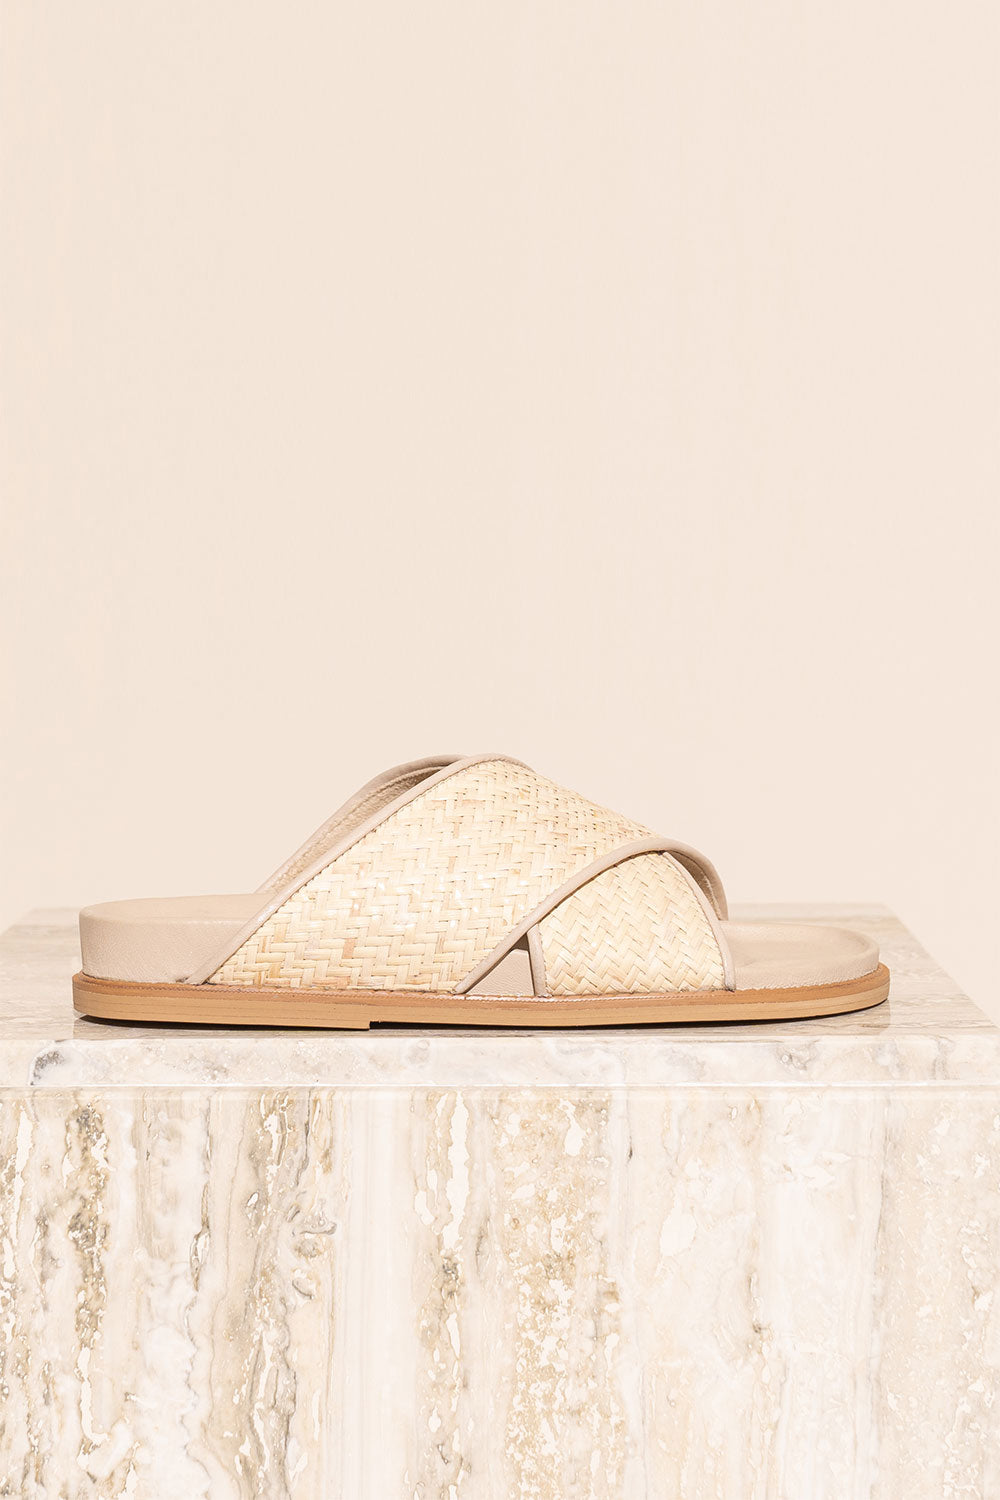 James Smith La Sponda Slide in Woven